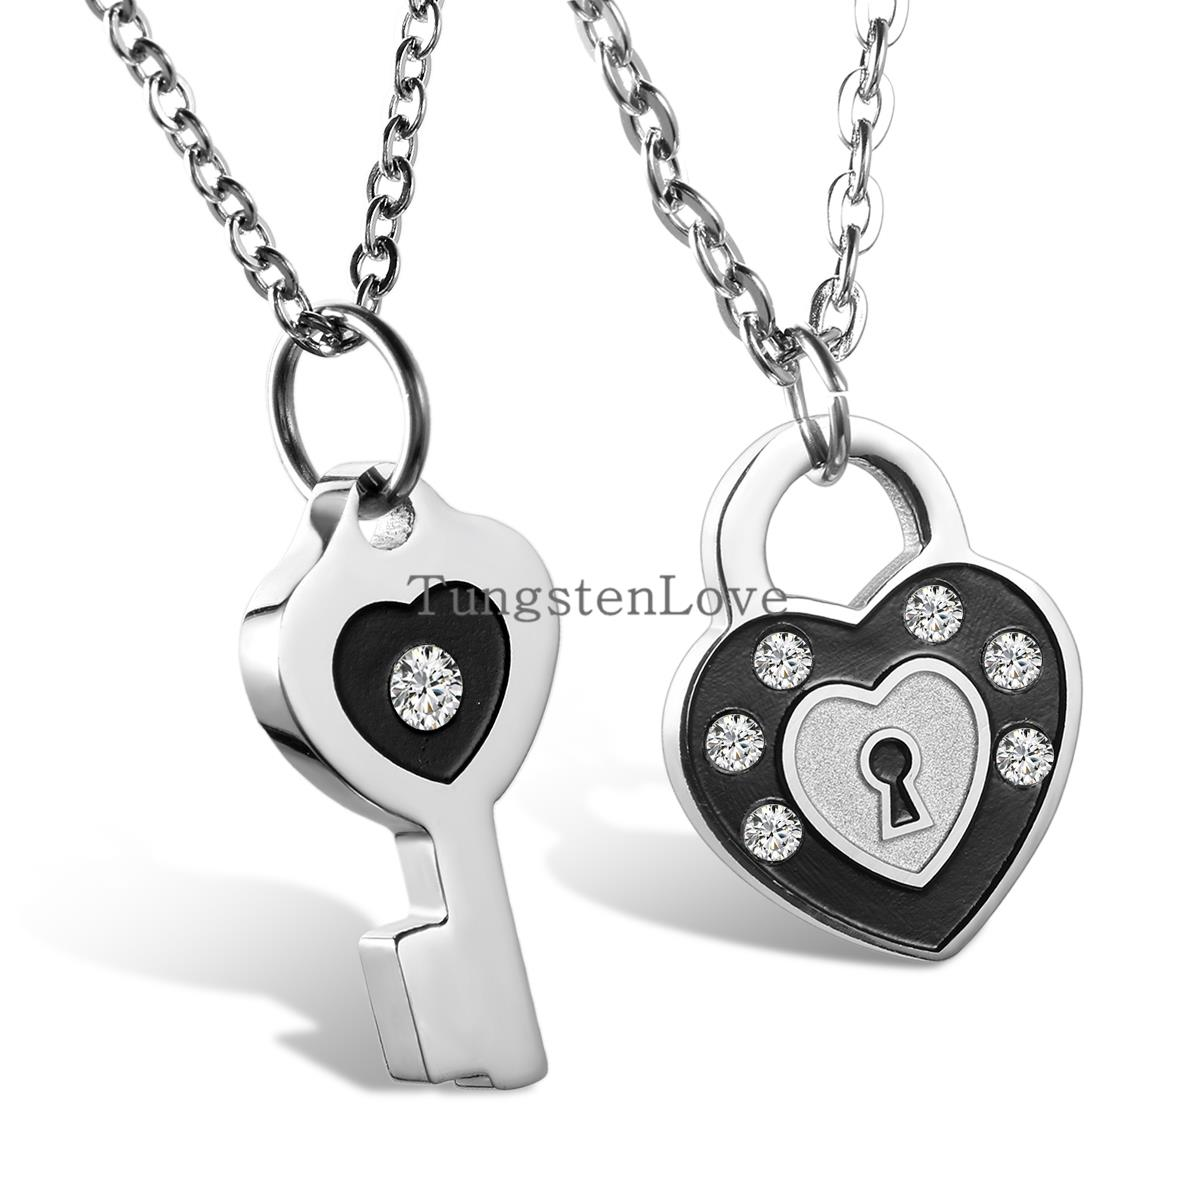 2pcs Mens Womens Couples Stainless Steel With Rhinestone